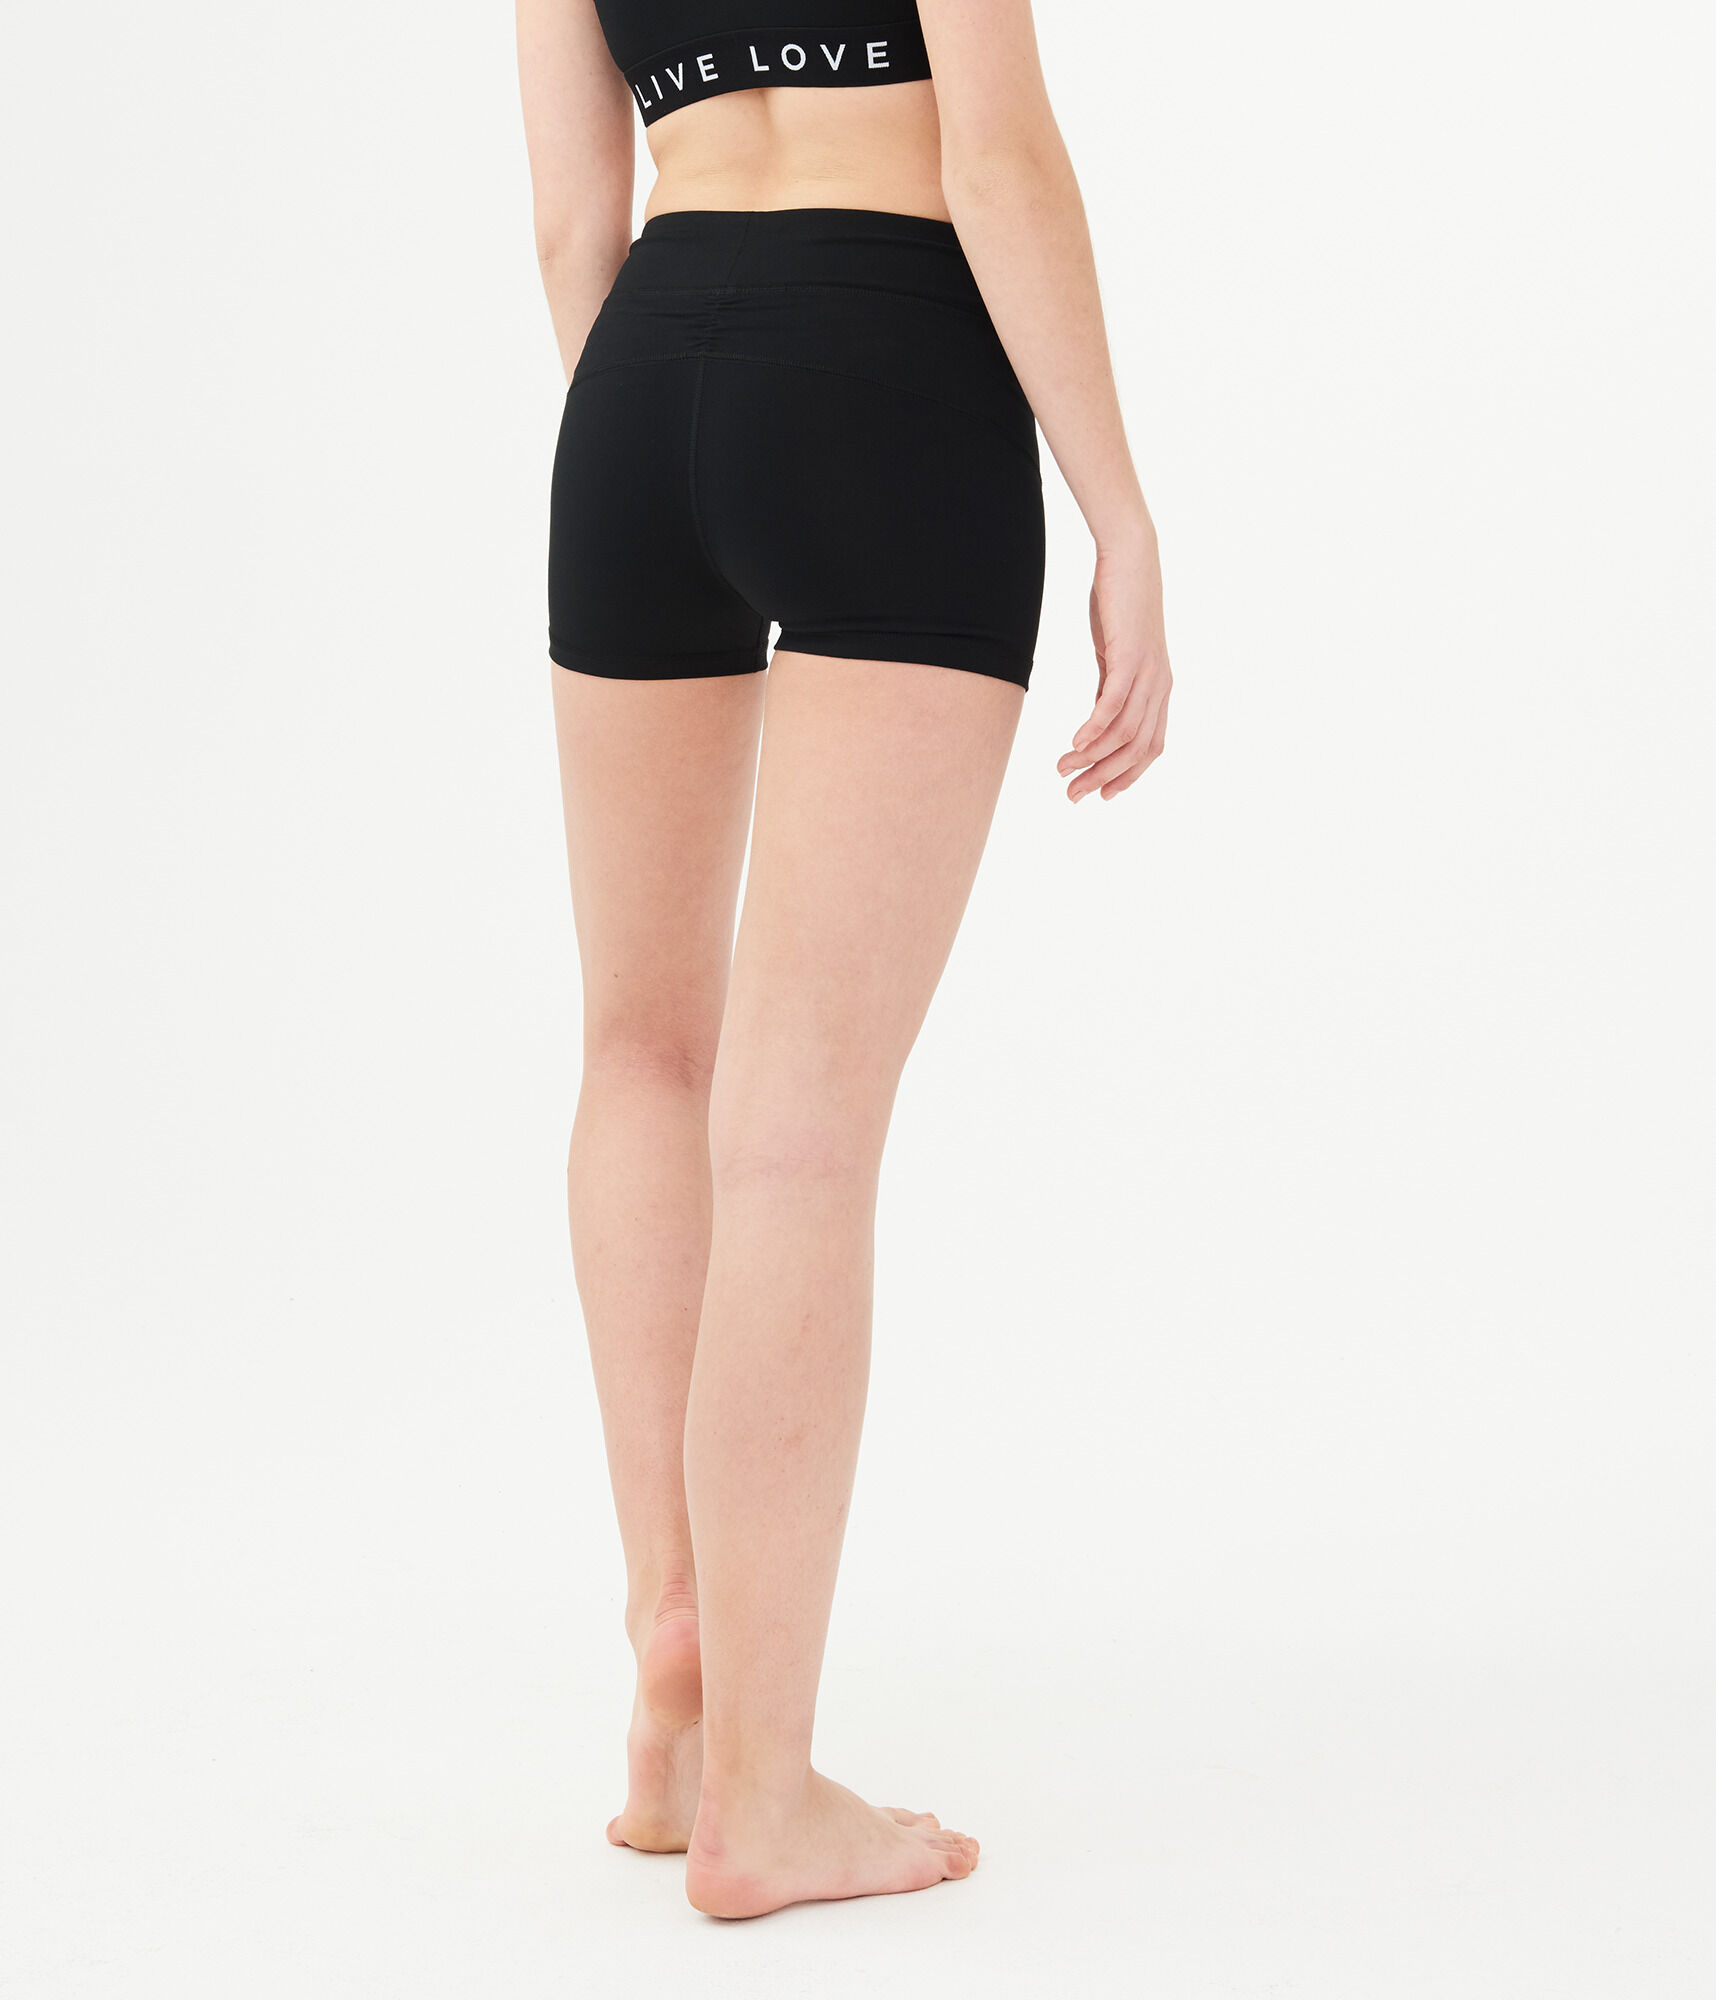 Womens Black Volleyball Shorts  Aeropostale-8386